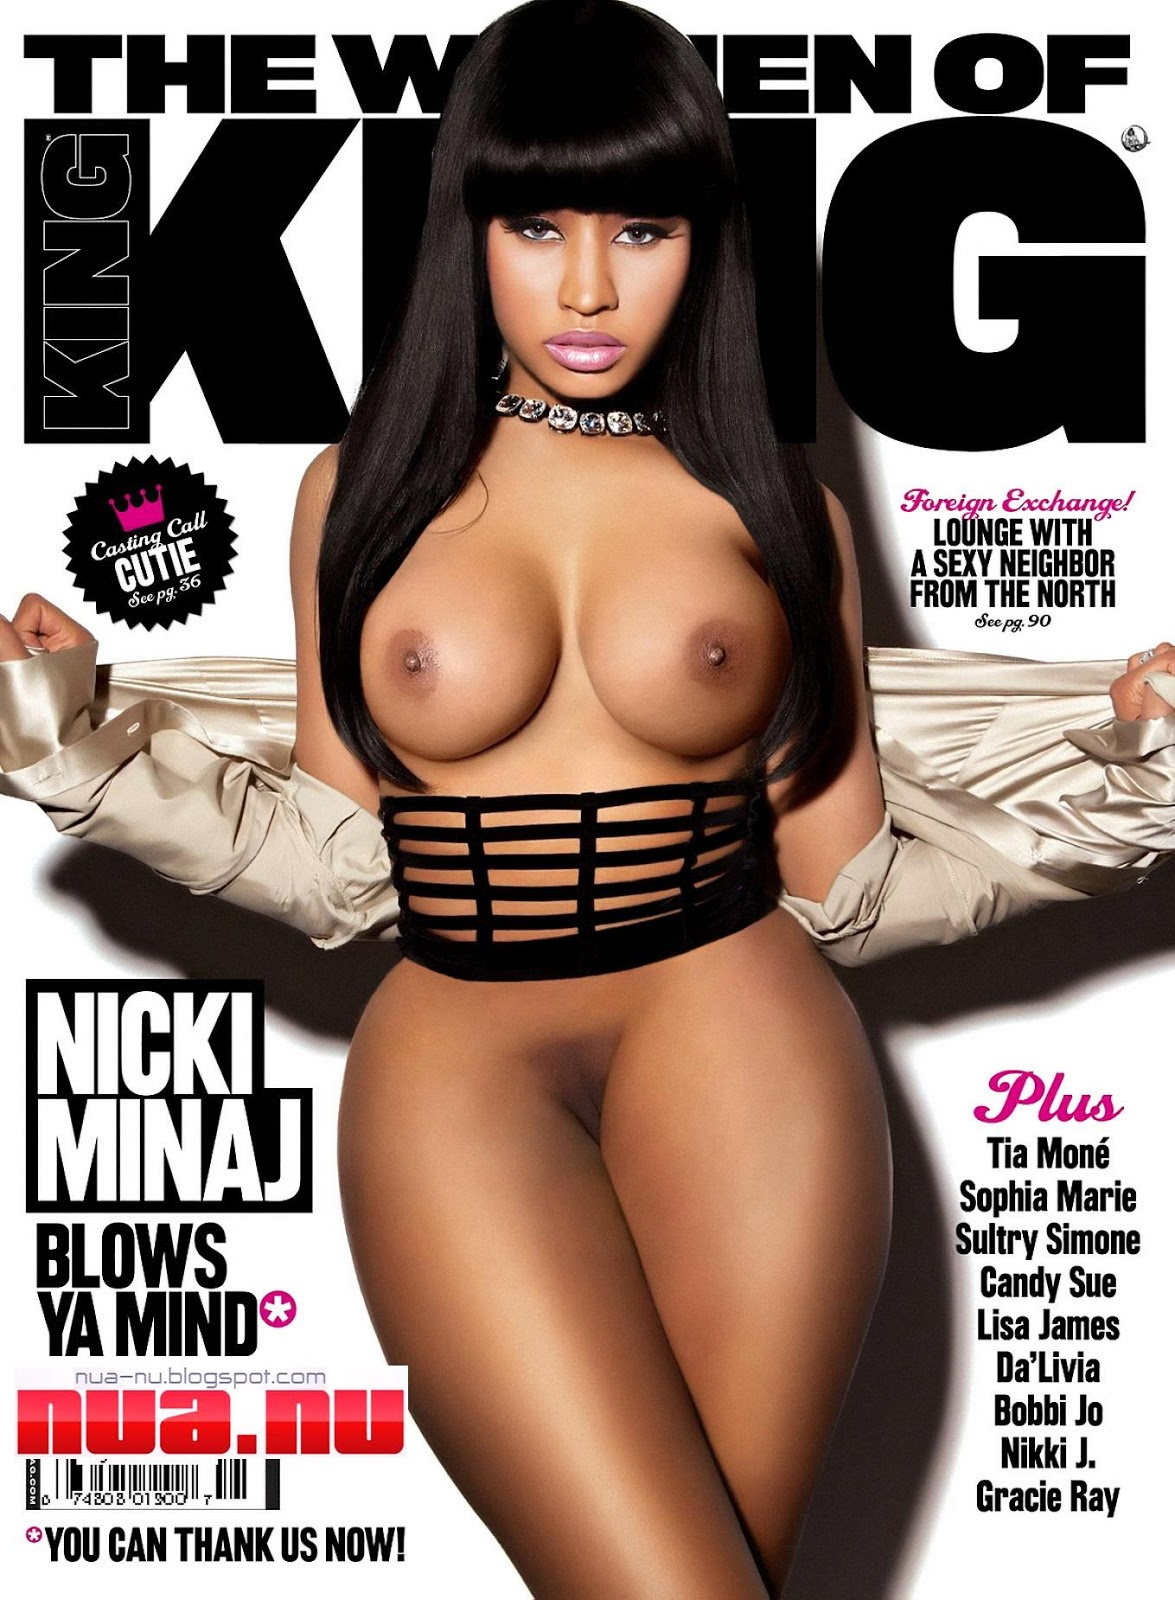 Nicki minaj full nude